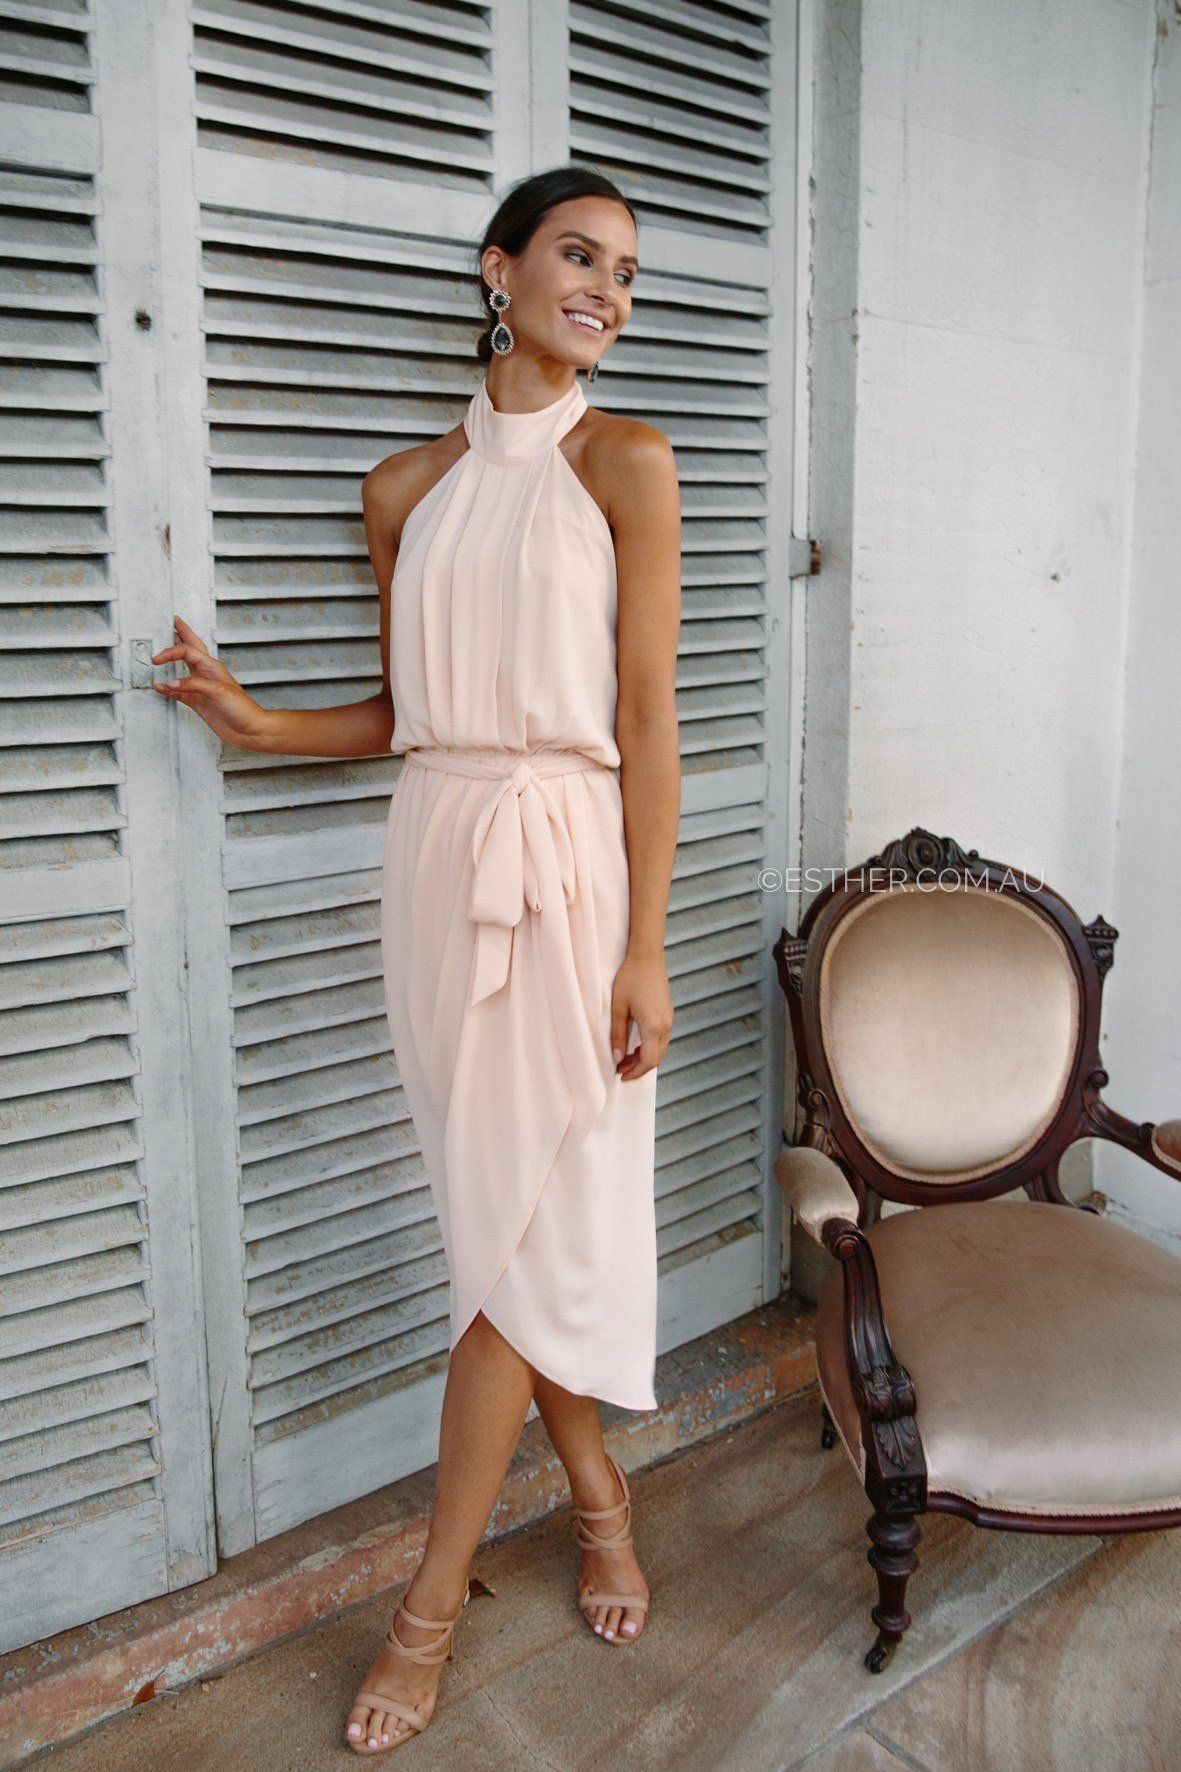 The amaryllis dress in soft peach is a dream with halter neck low